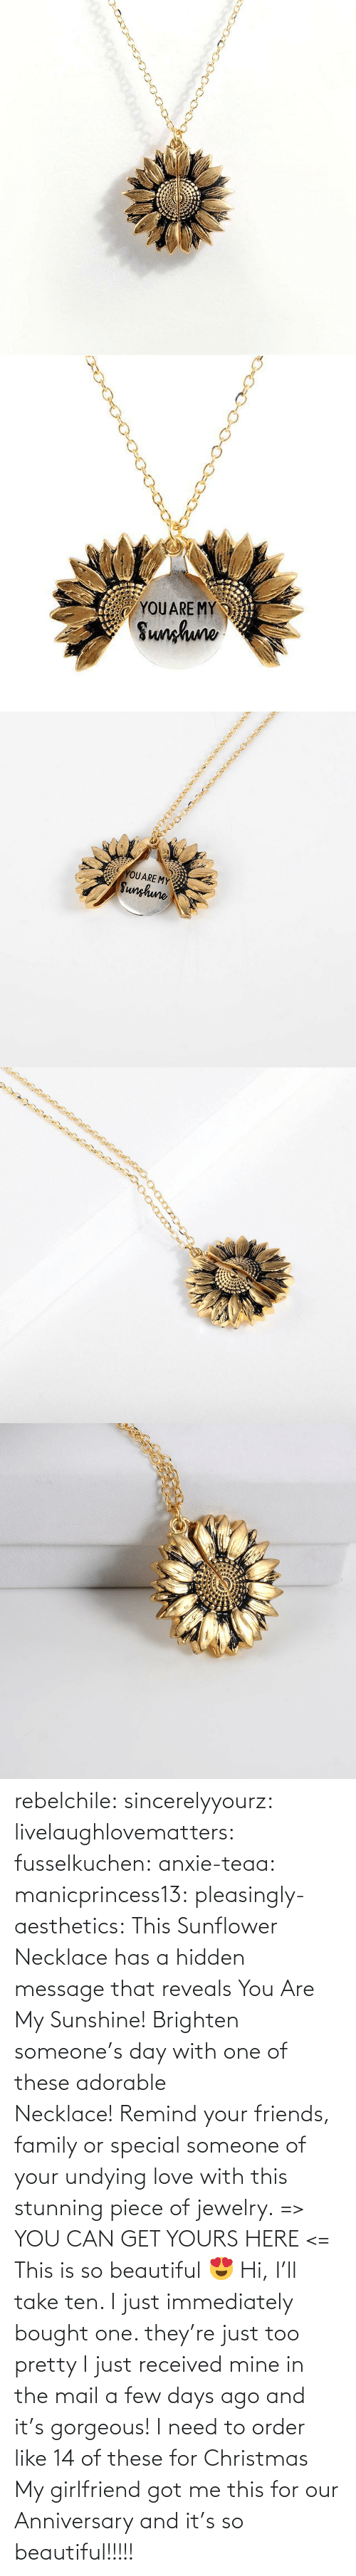 Jewelry: YOUARE MY  Sunhuno   YOUARE MY  Sunghune rebelchile:  sincerelyyourz:  livelaughlovematters:  fusselkuchen:  anxie-teaa:   manicprincess13:   pleasingly-aesthetics:  This Sunflower Necklace has a hidden message that reveals You Are My Sunshine! Brighten someone's day with one of these adorable Necklace! Remind your friends, family or special someone of your undying love with this stunning piece of jewelry. => YOU CAN GET YOURS HERE <=   This is so beautiful 😍    Hi, I'll take ten.    I just immediately bought one. they're just too pretty   I just received mine in the mail a few days ago and it's gorgeous!   I need to order like 14 of these for Christmas    My girlfriend got me this for our Anniversary and it's so beautiful!!!!!